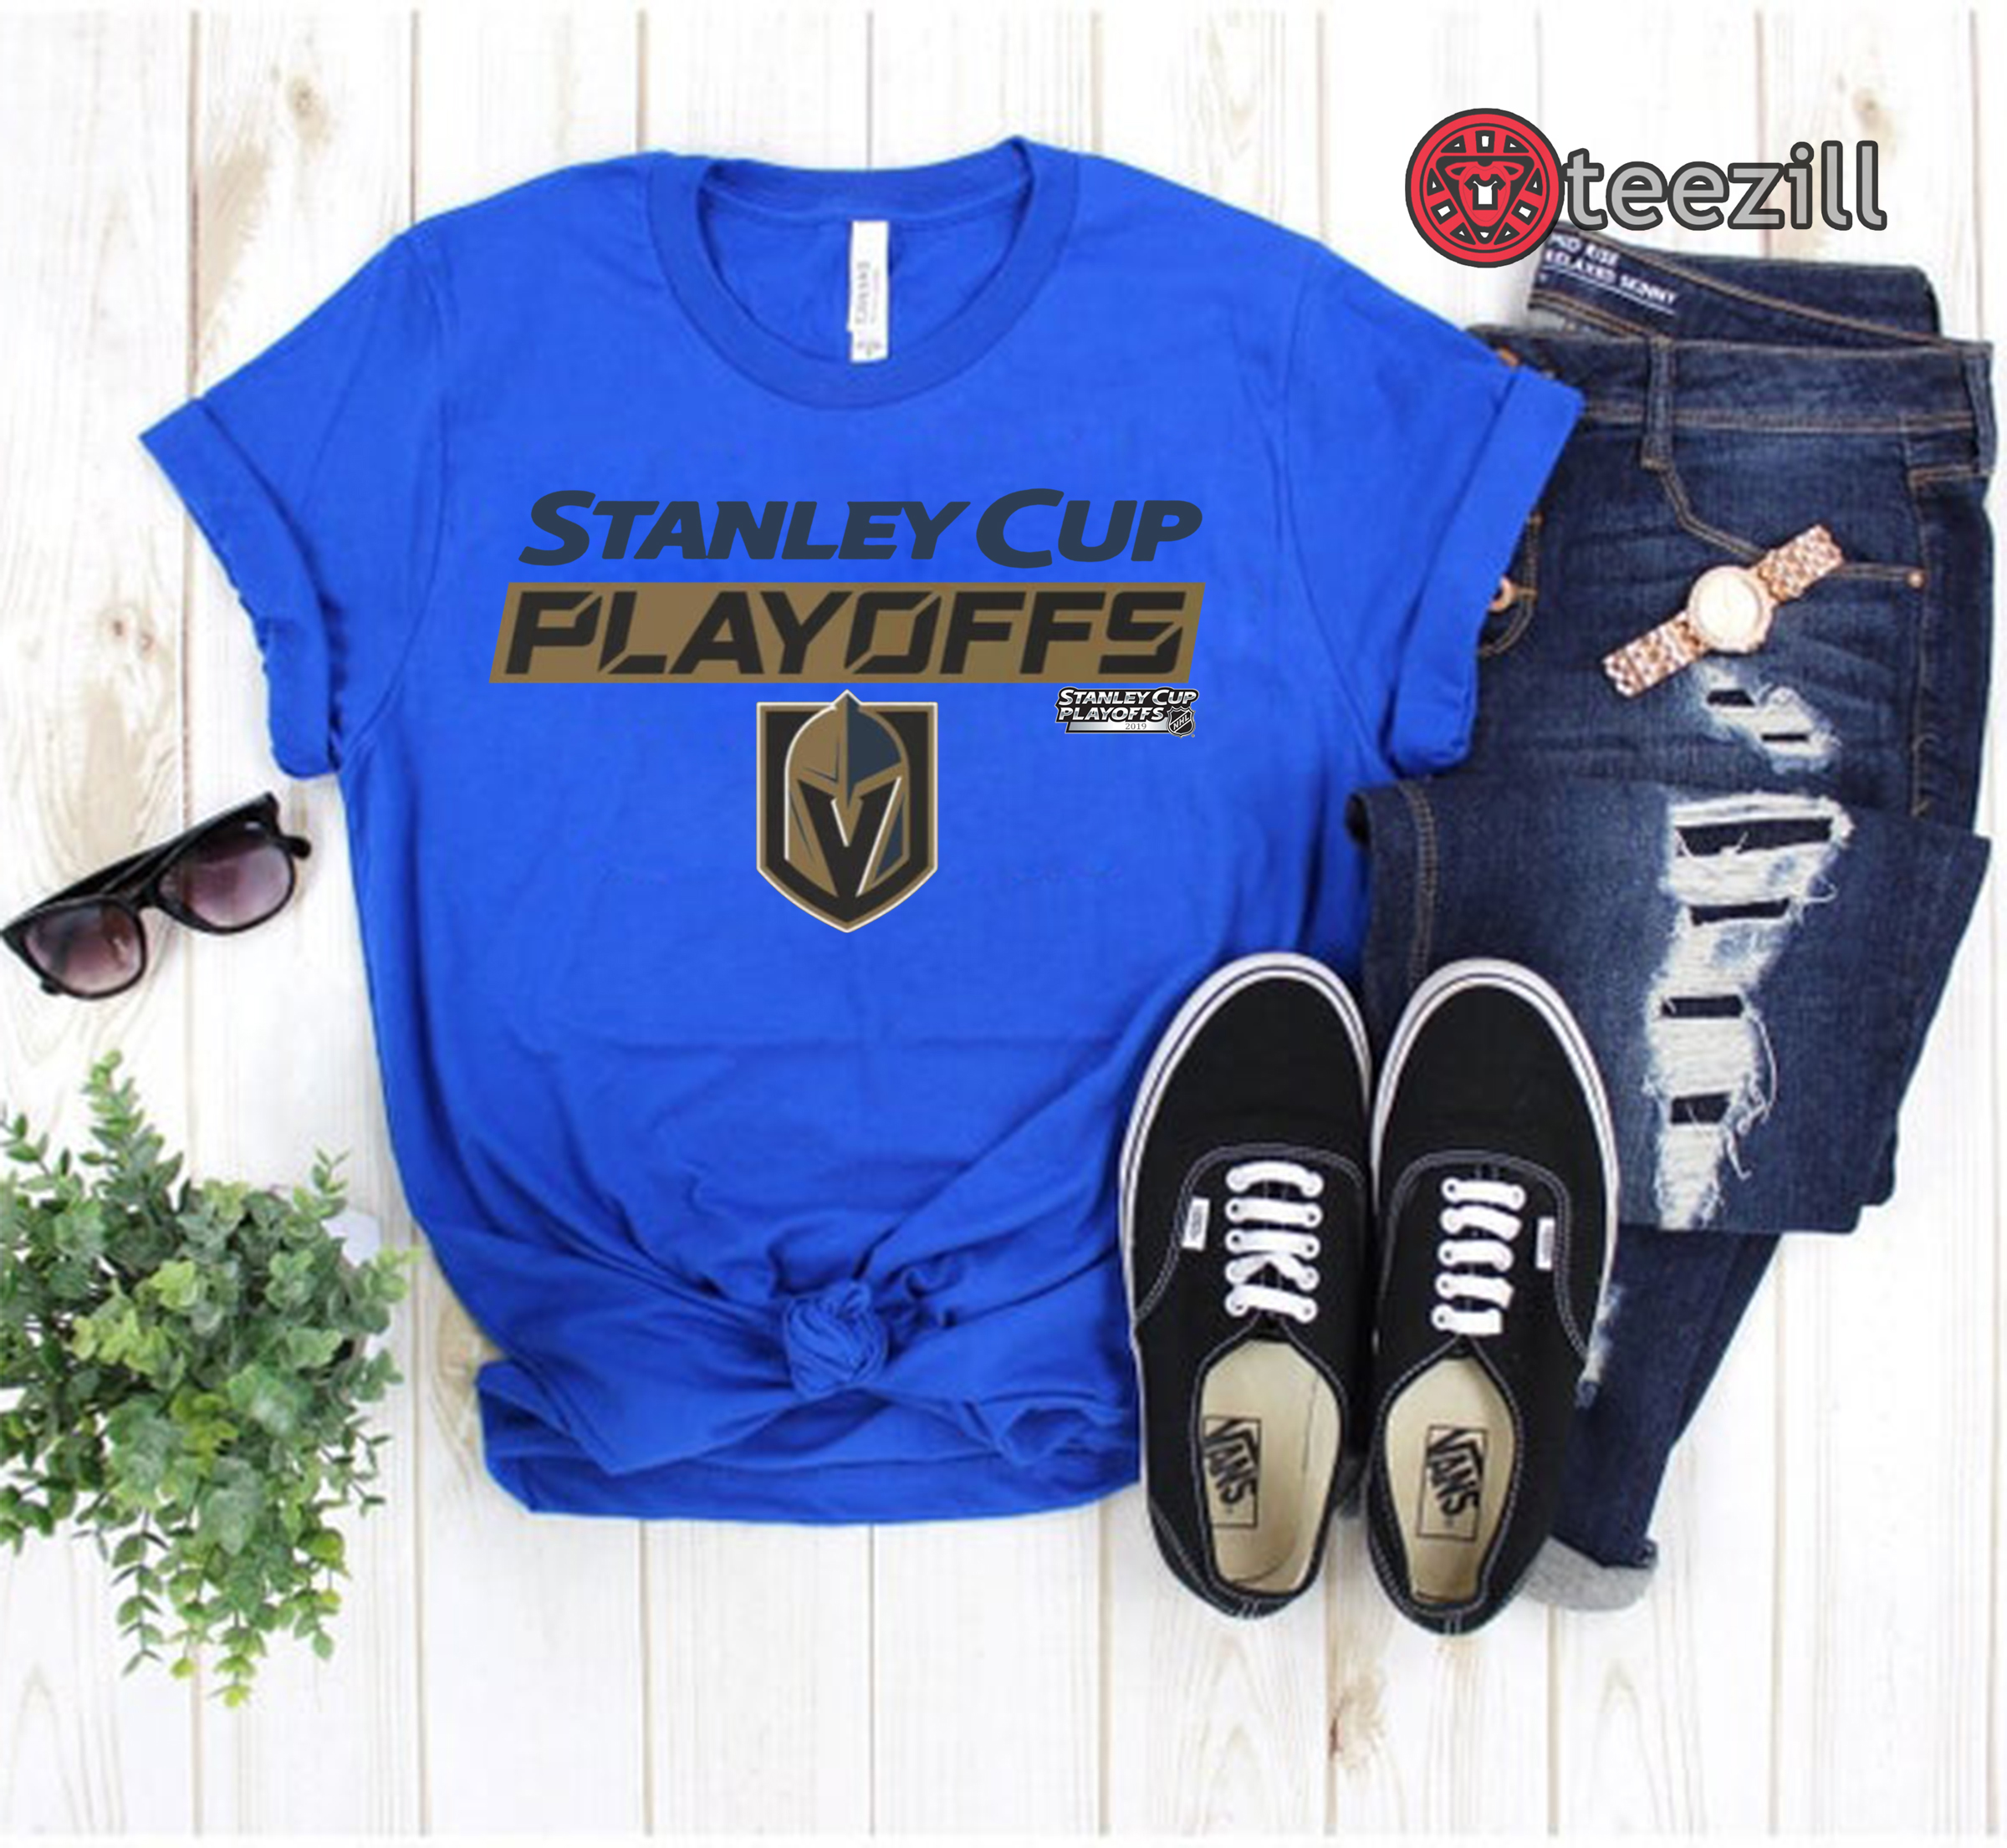 huge selection of 763c9 db6d0 Stanley Cup Playoffs Vegas Golden Knights 2019 Tshirt